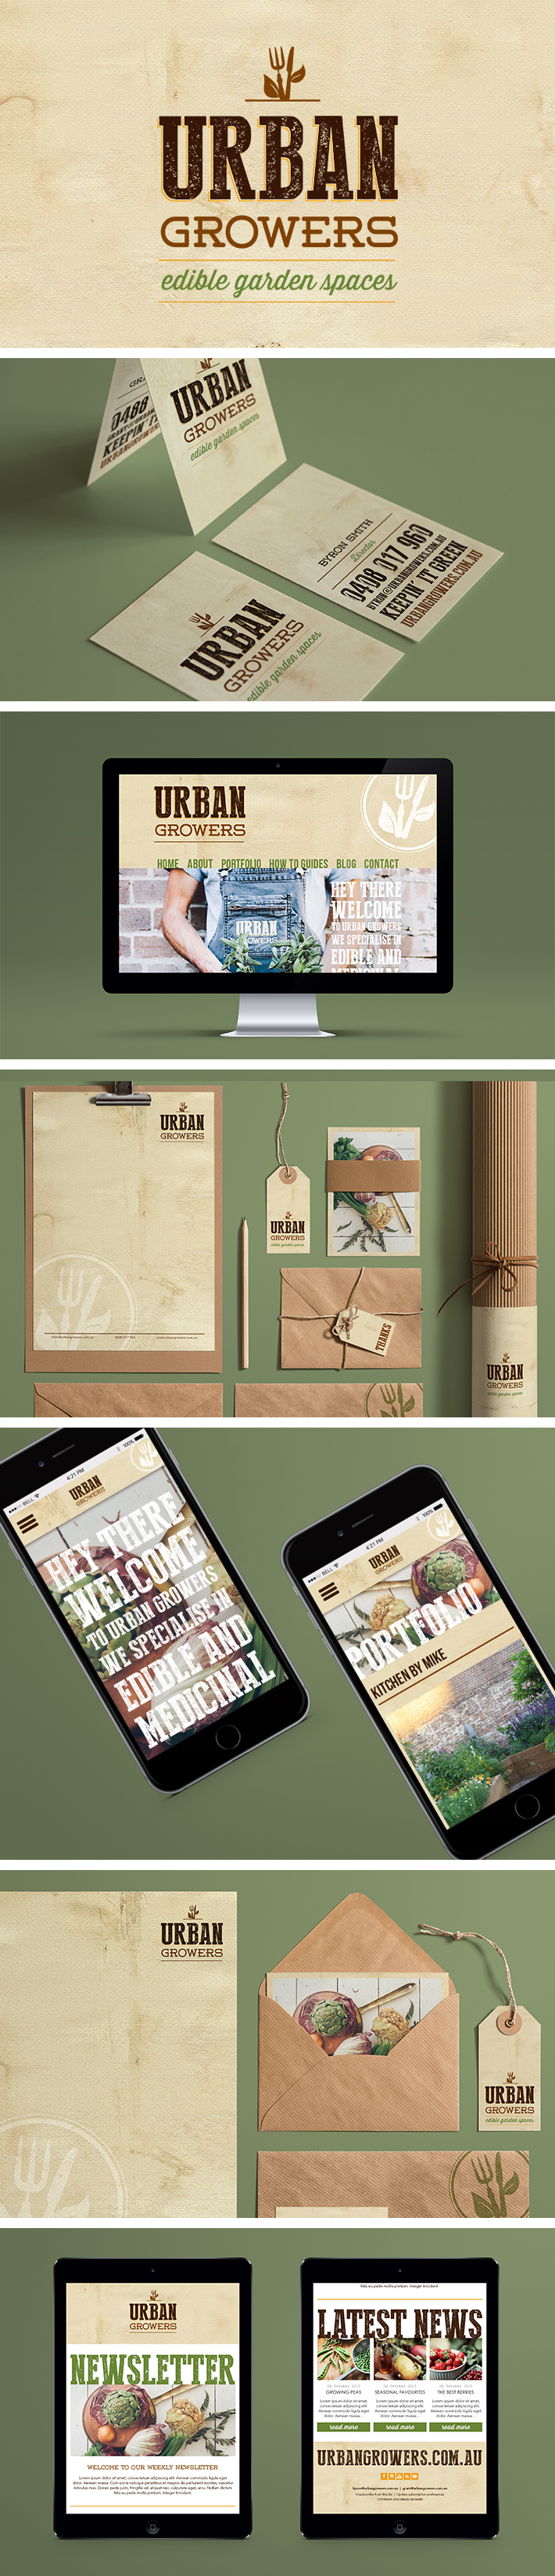 Urban Growers branding, stationary, website and mobile/ tablet website by Smack Bang Designs #Branding #Stationary #Website #Mobile #Tablet #GraphicDesign #SmackBangDesigns